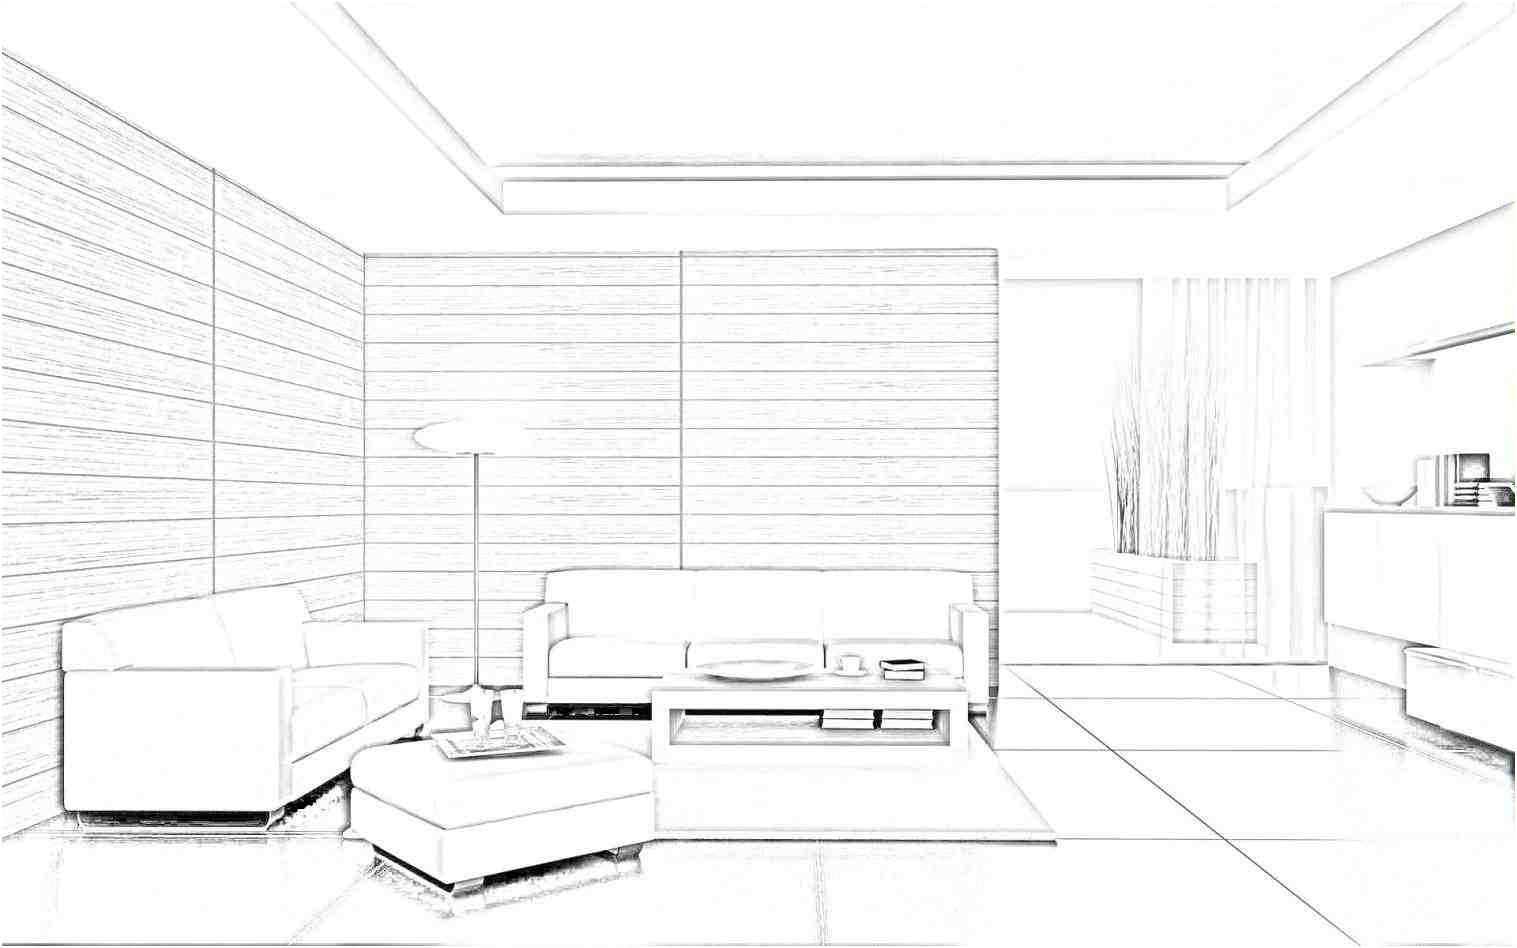 15 Quiet One Point Perspective Living Room Drawing Pics Mestyso